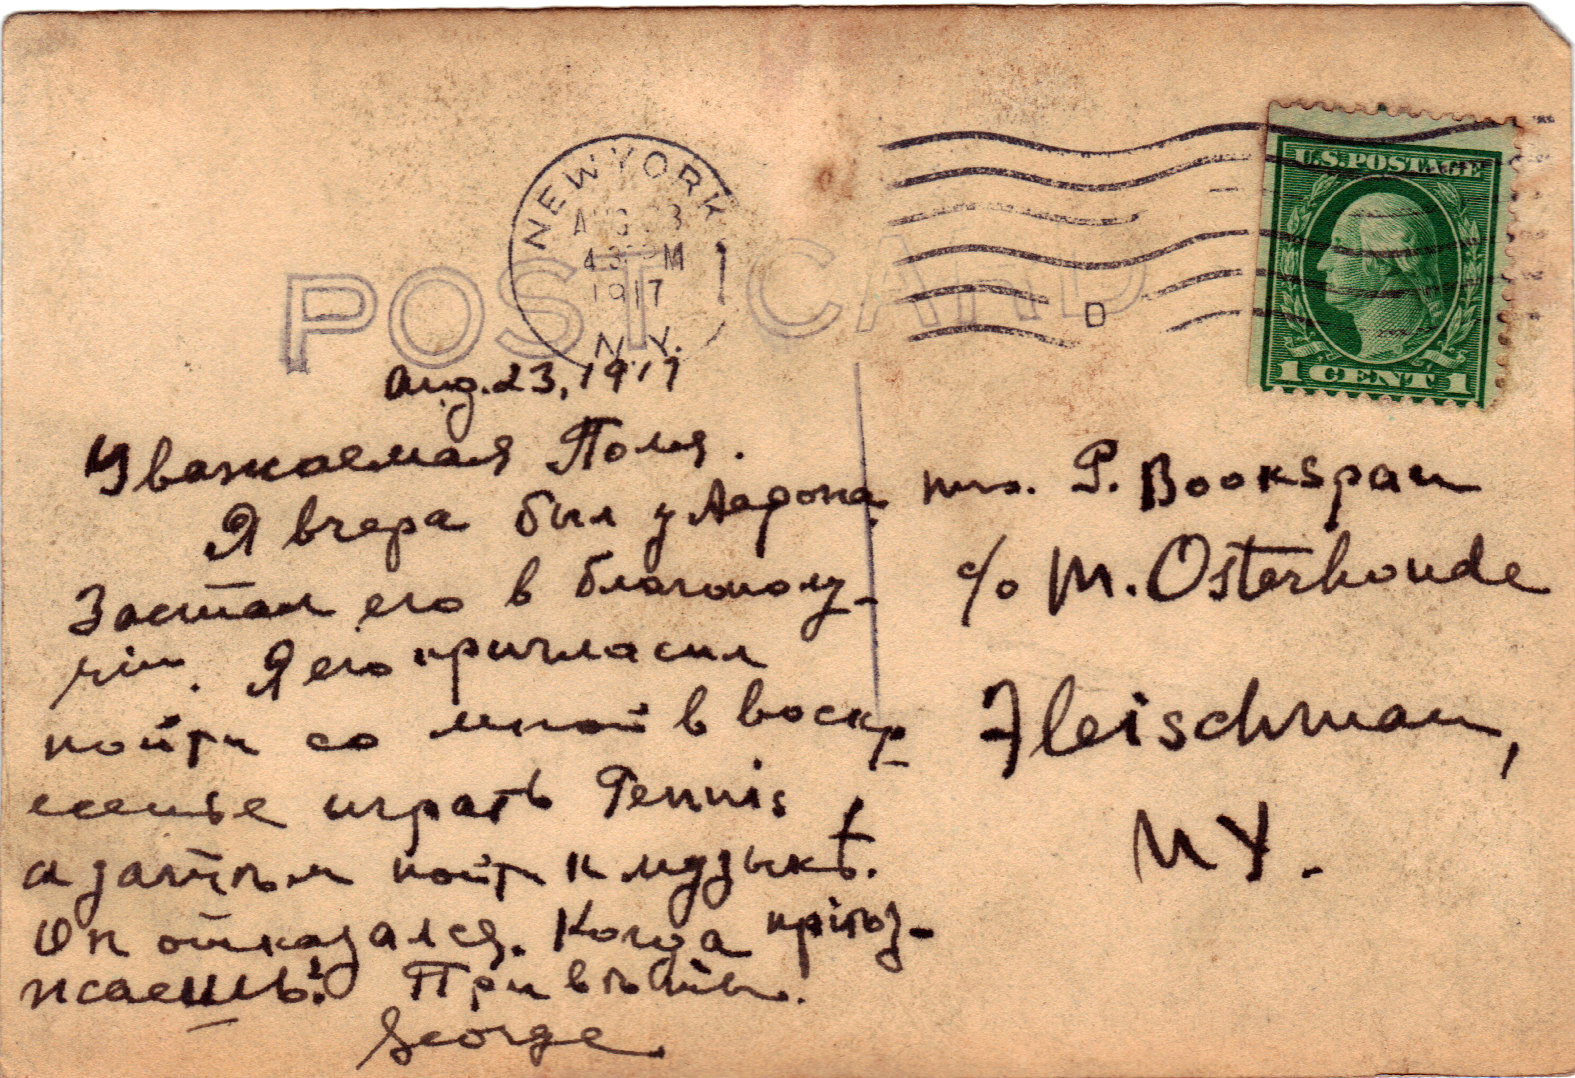 Postcard to Polya from George Ehrlich August 23, 1917 B